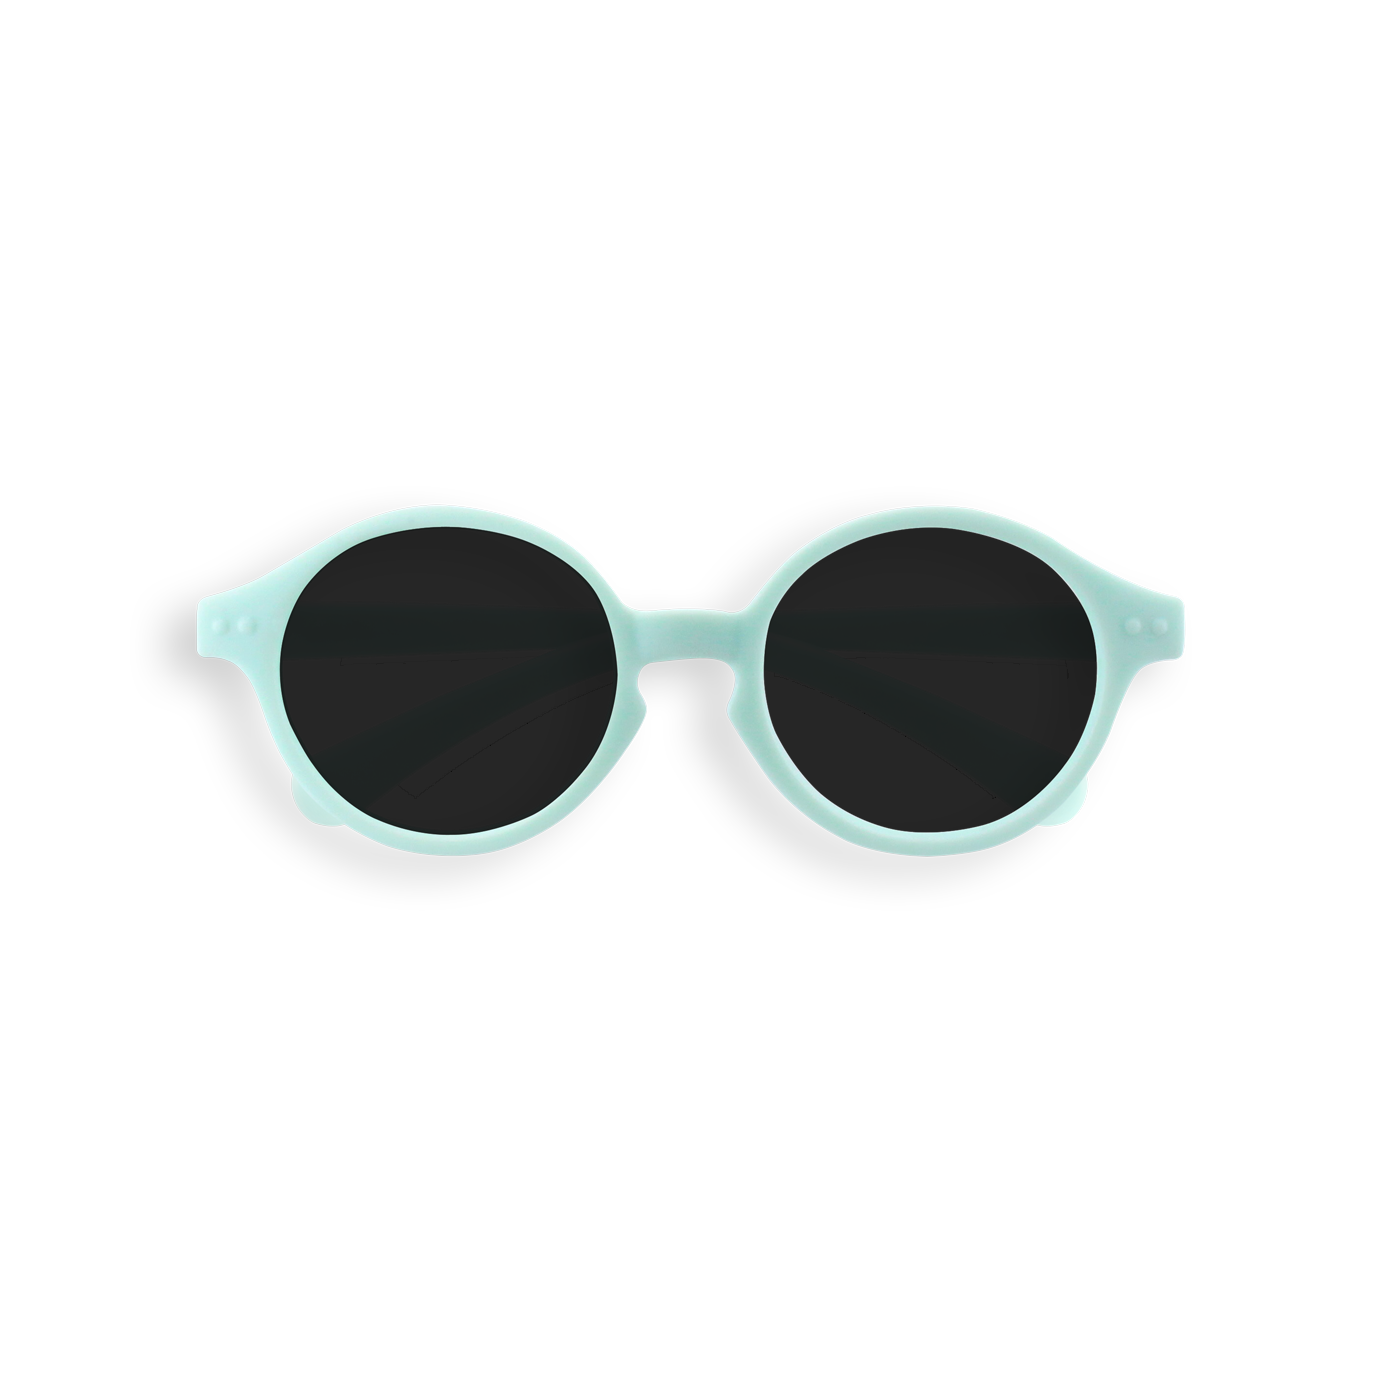 Kids Sunglasses - Polarized